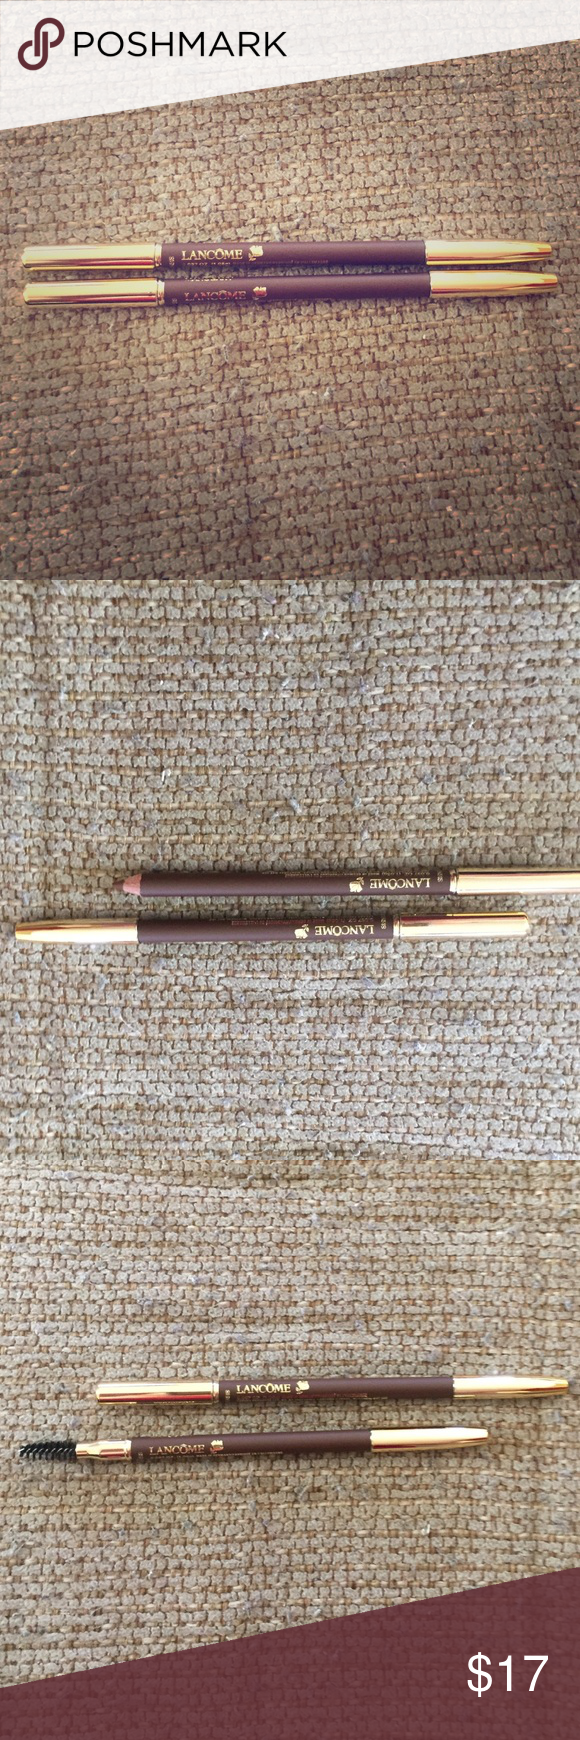 Two brand new Lancôme brow pencils! Two brand new Lancôme brow pencils! They are both in the color Mahogany. They can be sold separately too! Lancome Other